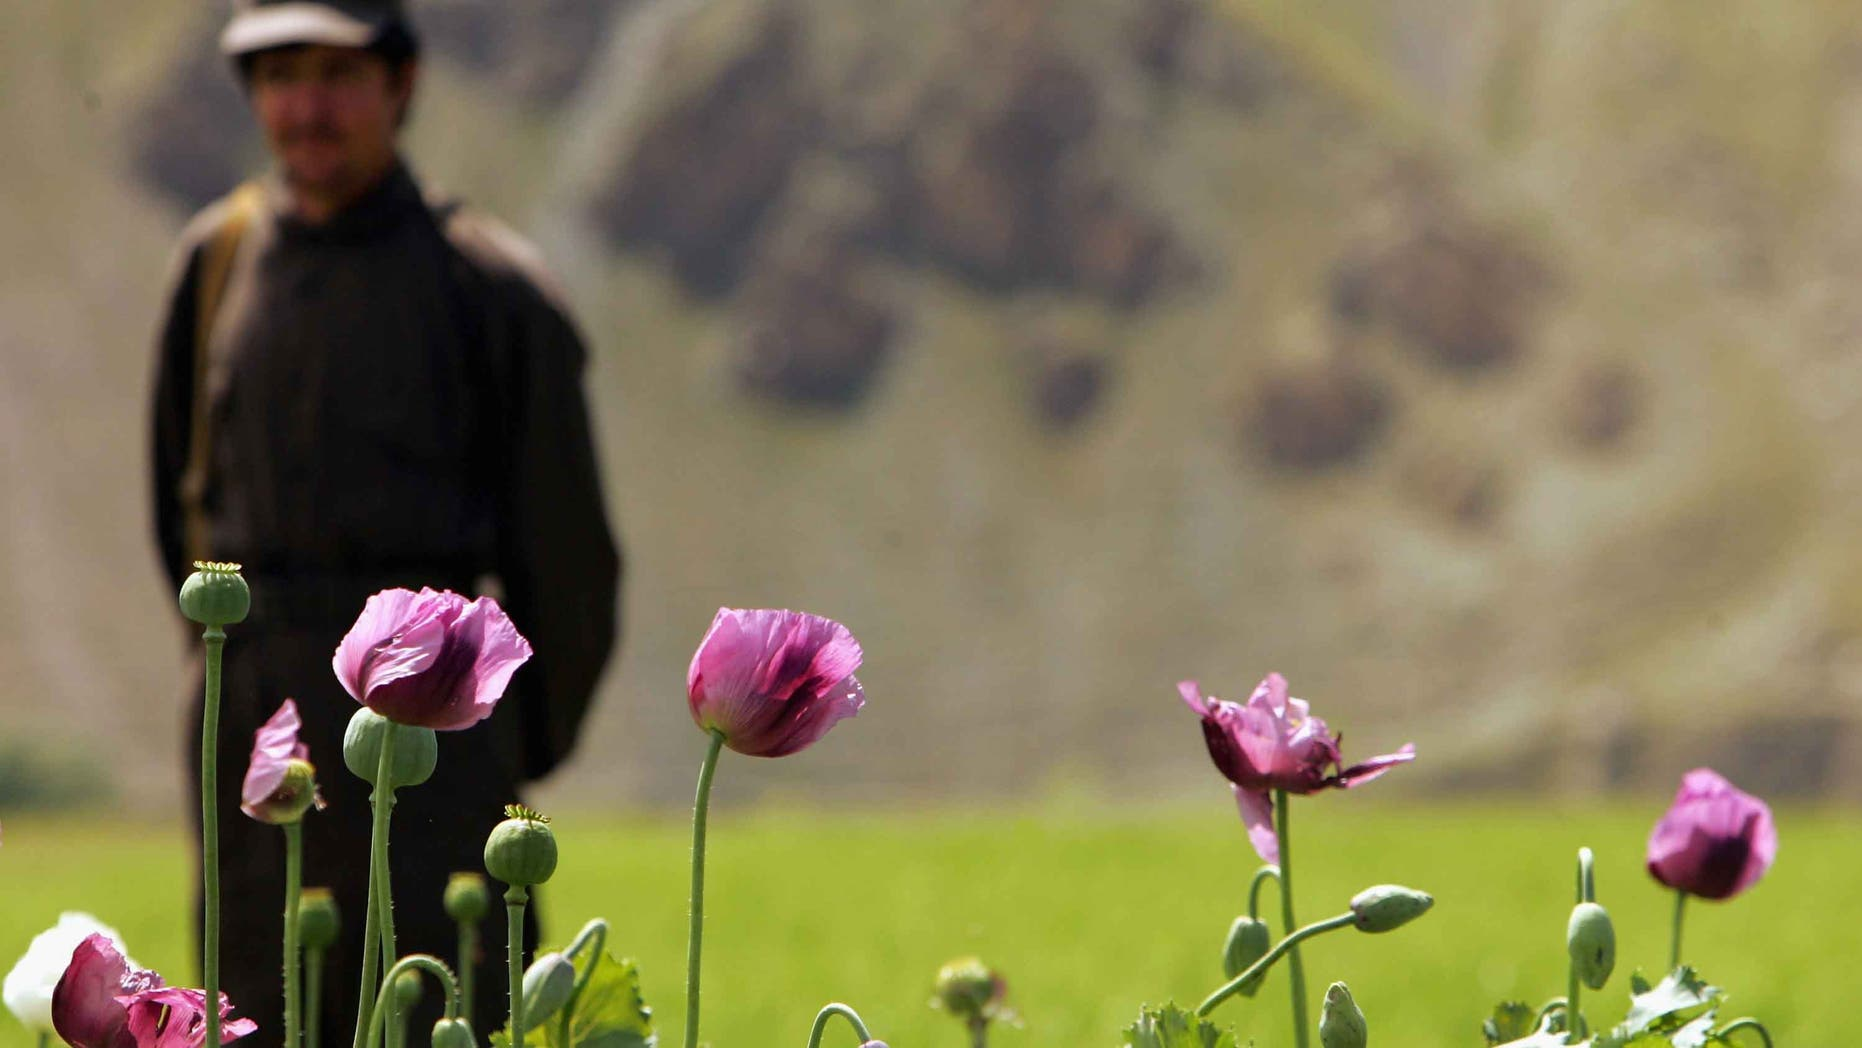 """PANSHAR, AFGHANISTAN - MAY 29: An Afghan security guard stands near by a poppy field May 29, 2005 in Panshar, in the Badakhshan district in the northeast of Afghanistan. 10 kg of opium makes about 1kg of heroin. Afghanistan, the world's largest producer of opium and heroin launched the first survey of drug abuse among its own population. The country produced 90 percent of the world's opium which is refined into heroin for sale in many parts of the world. U.N. experts have warned that the country is turning into a """"narco-state"""" less than four years after the fall of the Taliban. President Hamid Karzai recently came under fire during his visit with President Bush for his record in fighting the war on drugs. (Photo by Paula Bronstein/Getty Images)"""